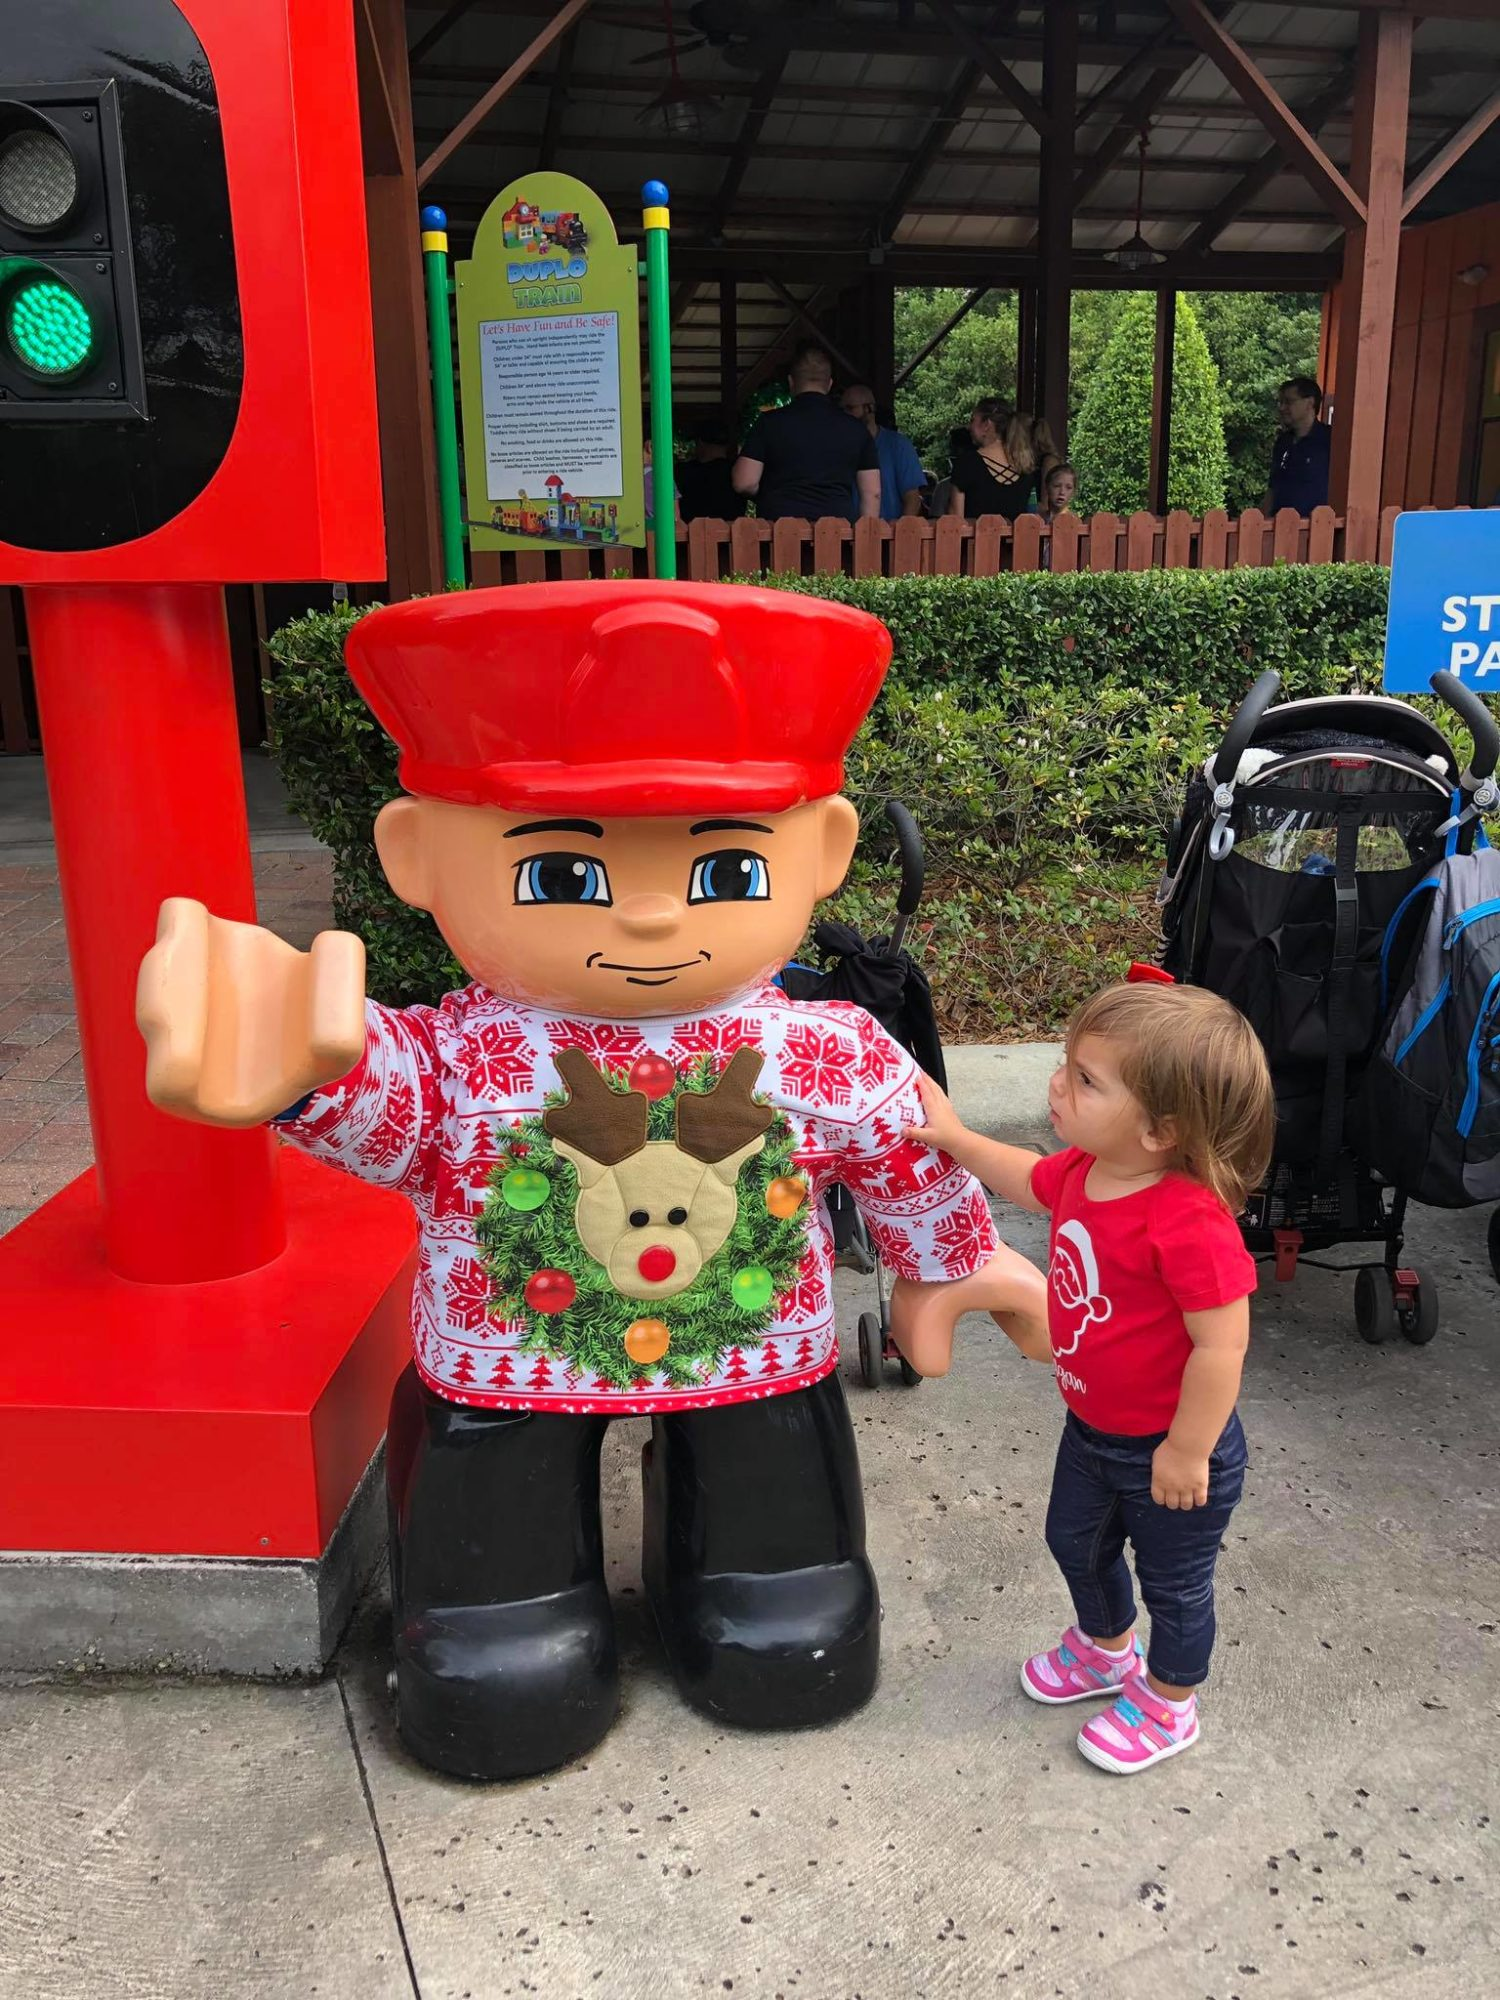 LEGOLAND CHRISTMAS BRICKTACULAR DUPLO LAND